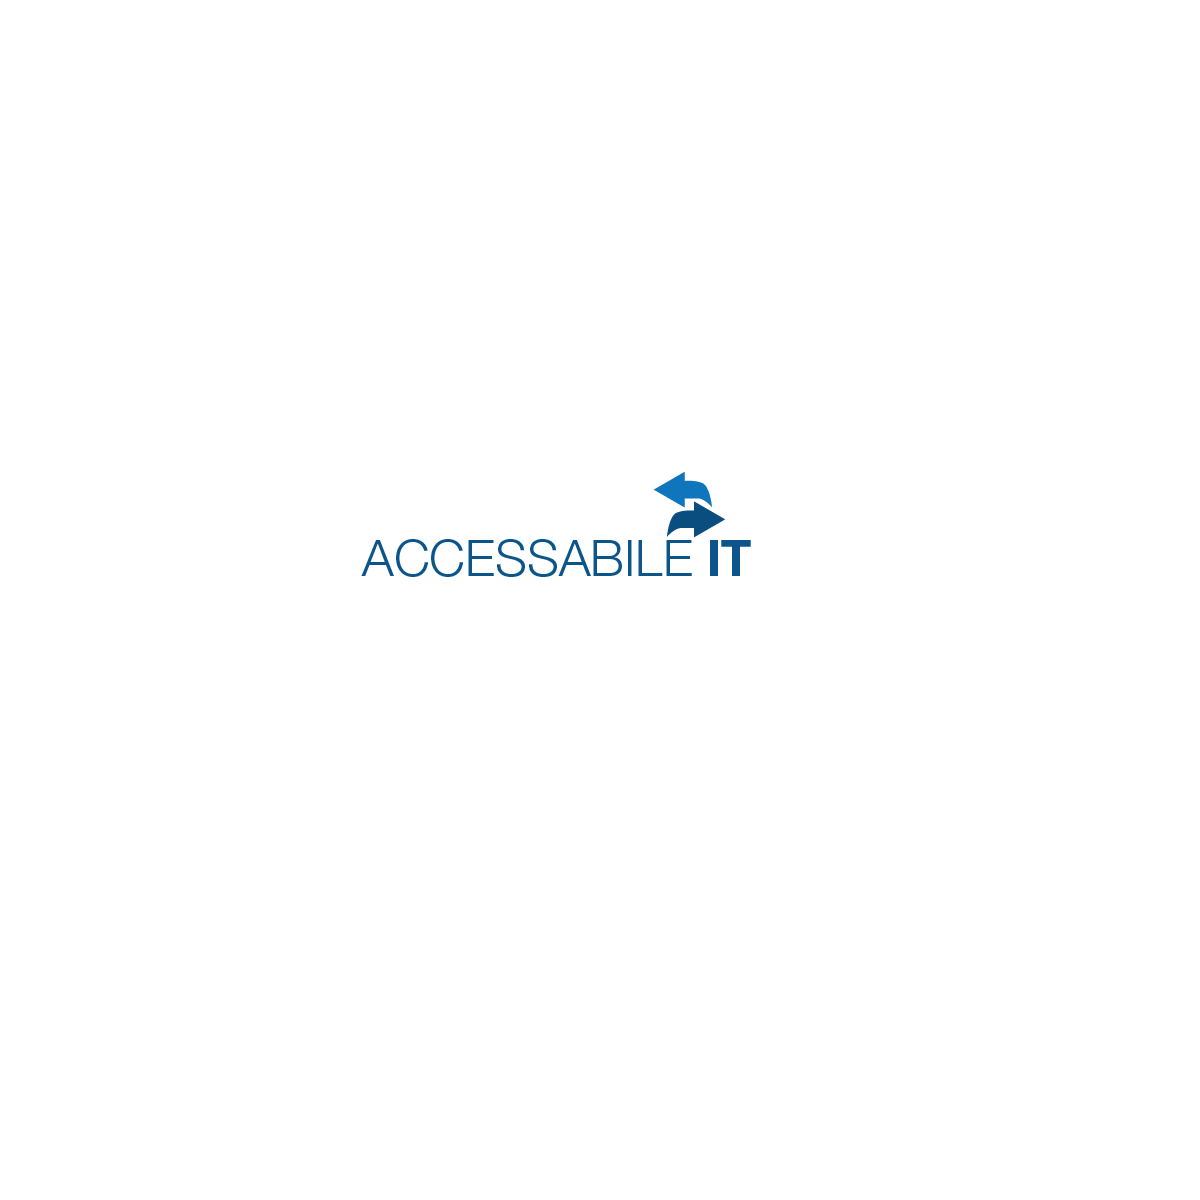 Logo Design by Robert  ARNDT  - Entry No. 526 in the Logo Design Contest Logo Design Needed for Exciting New Company Accessible IT.